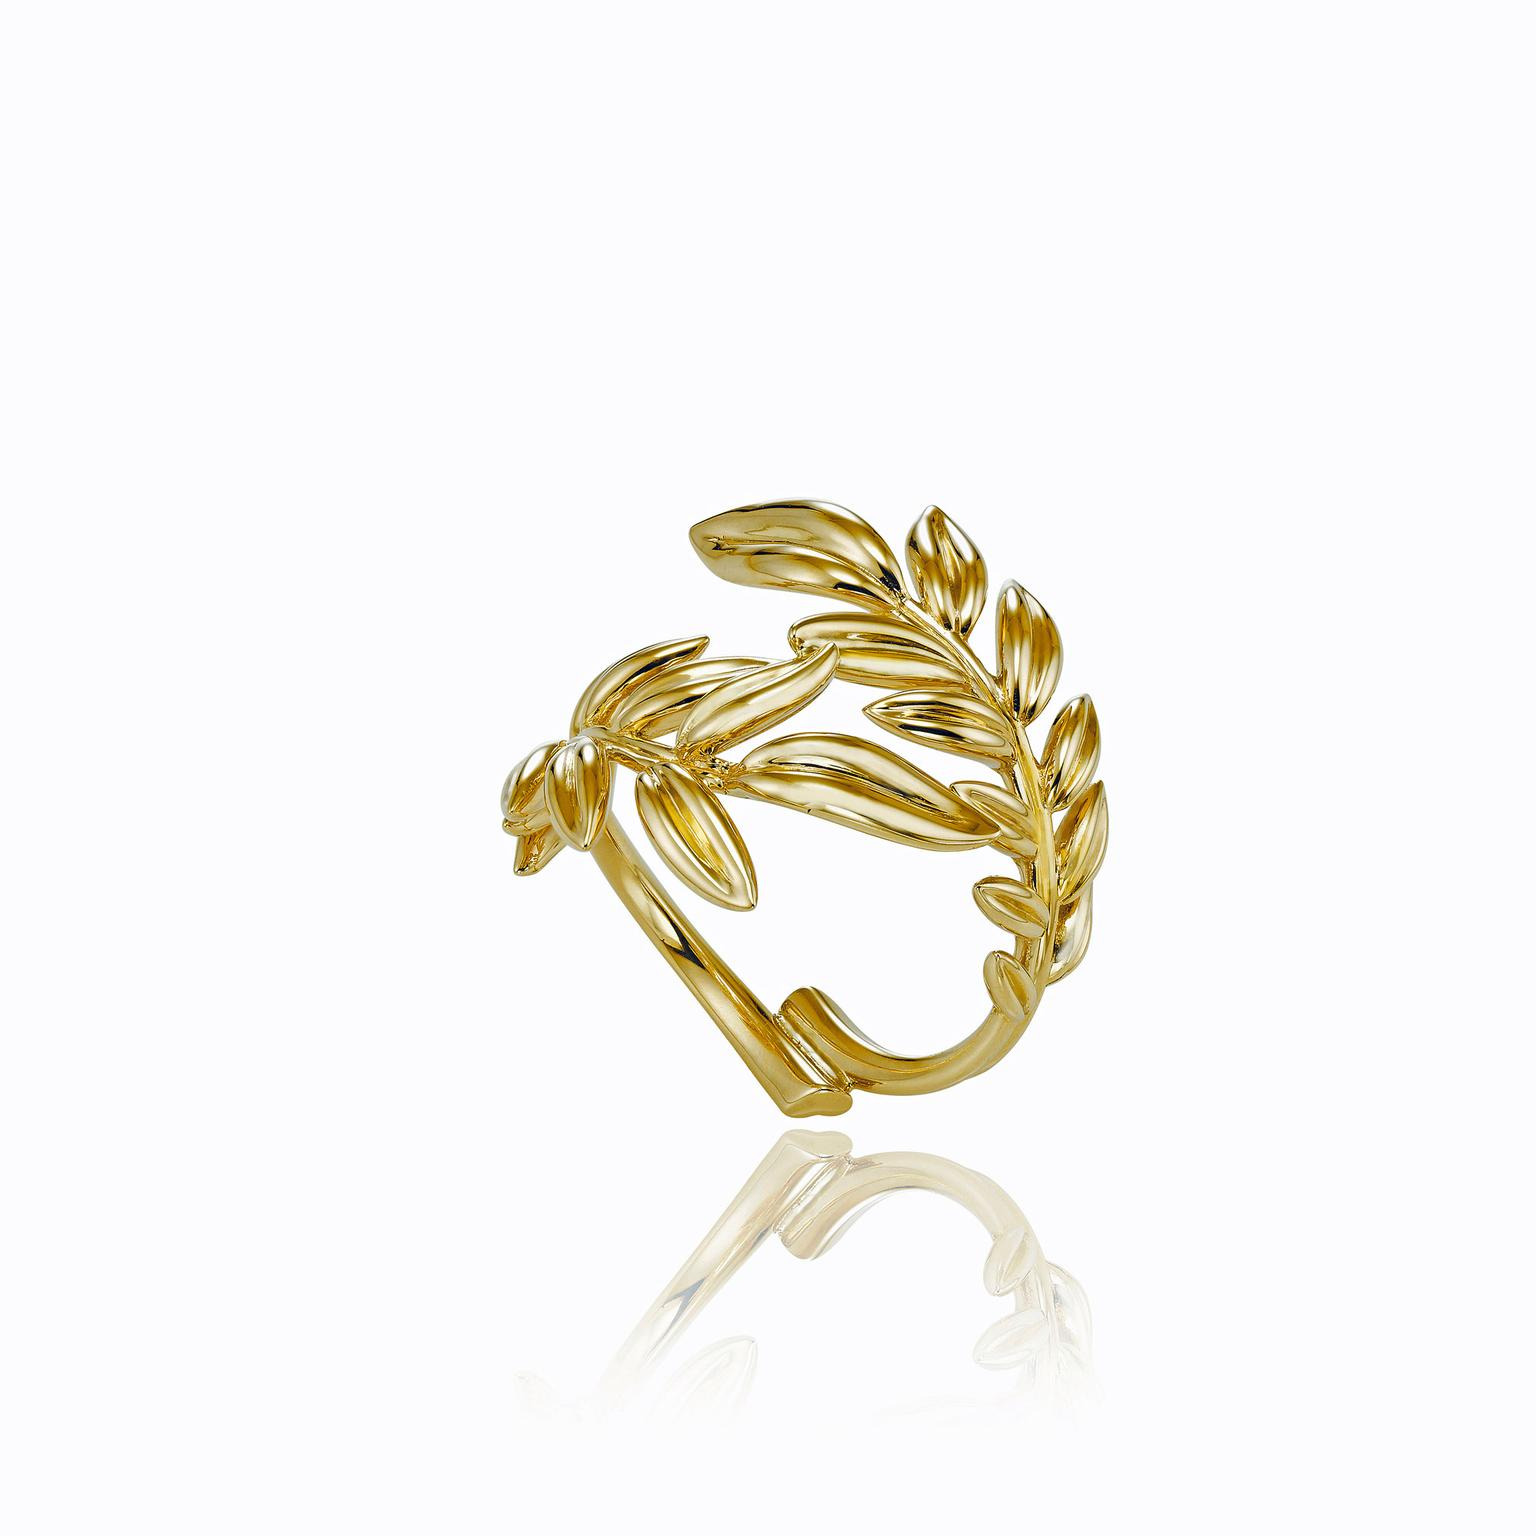 Chopard Palme Verte Fairmined yellow gold ring